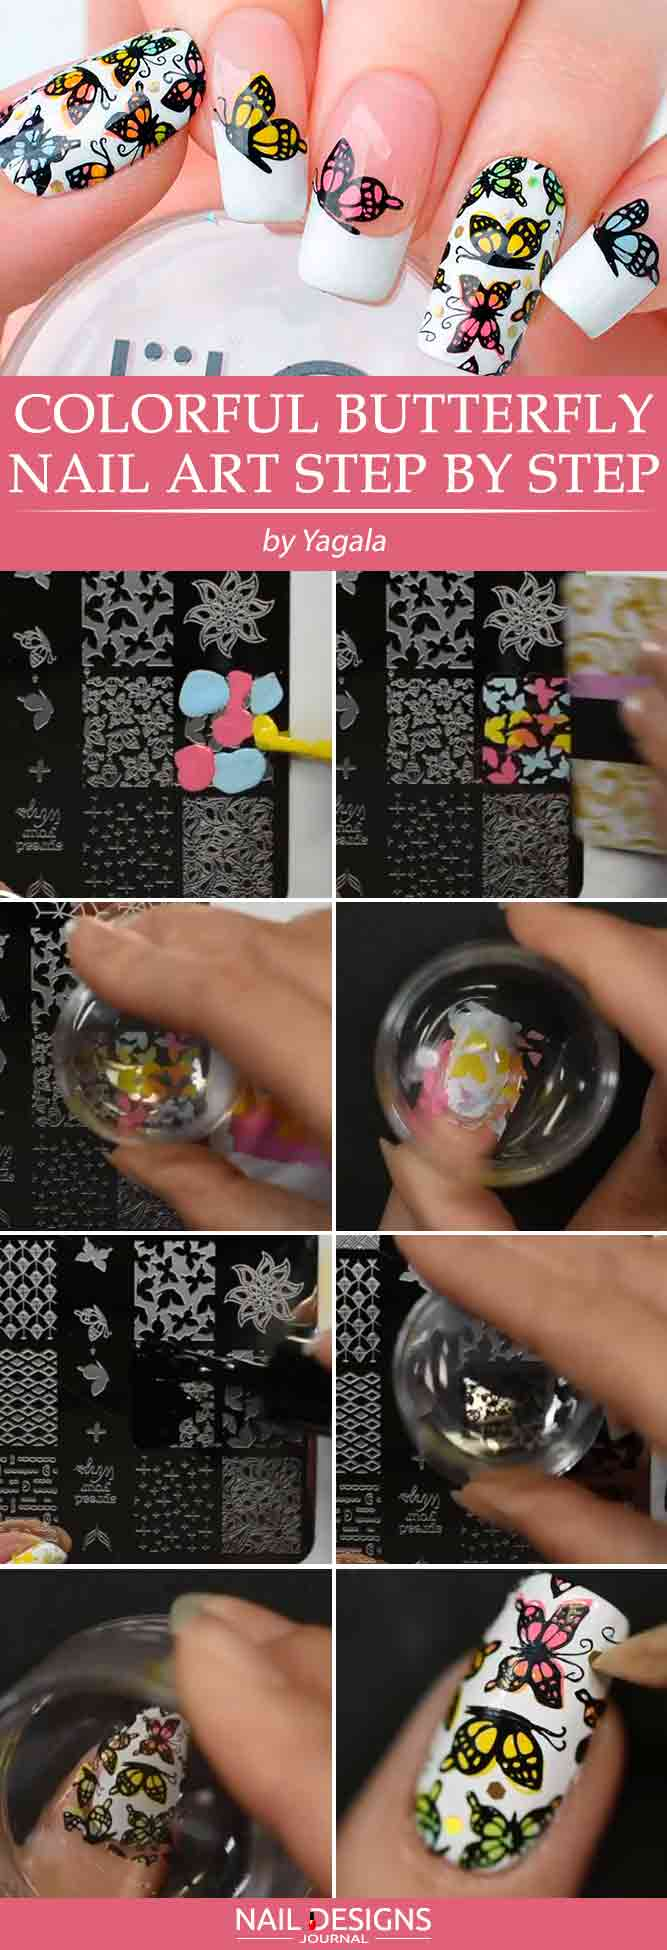 Colorful Butterfly Nail Art Step By Step #nailstamping